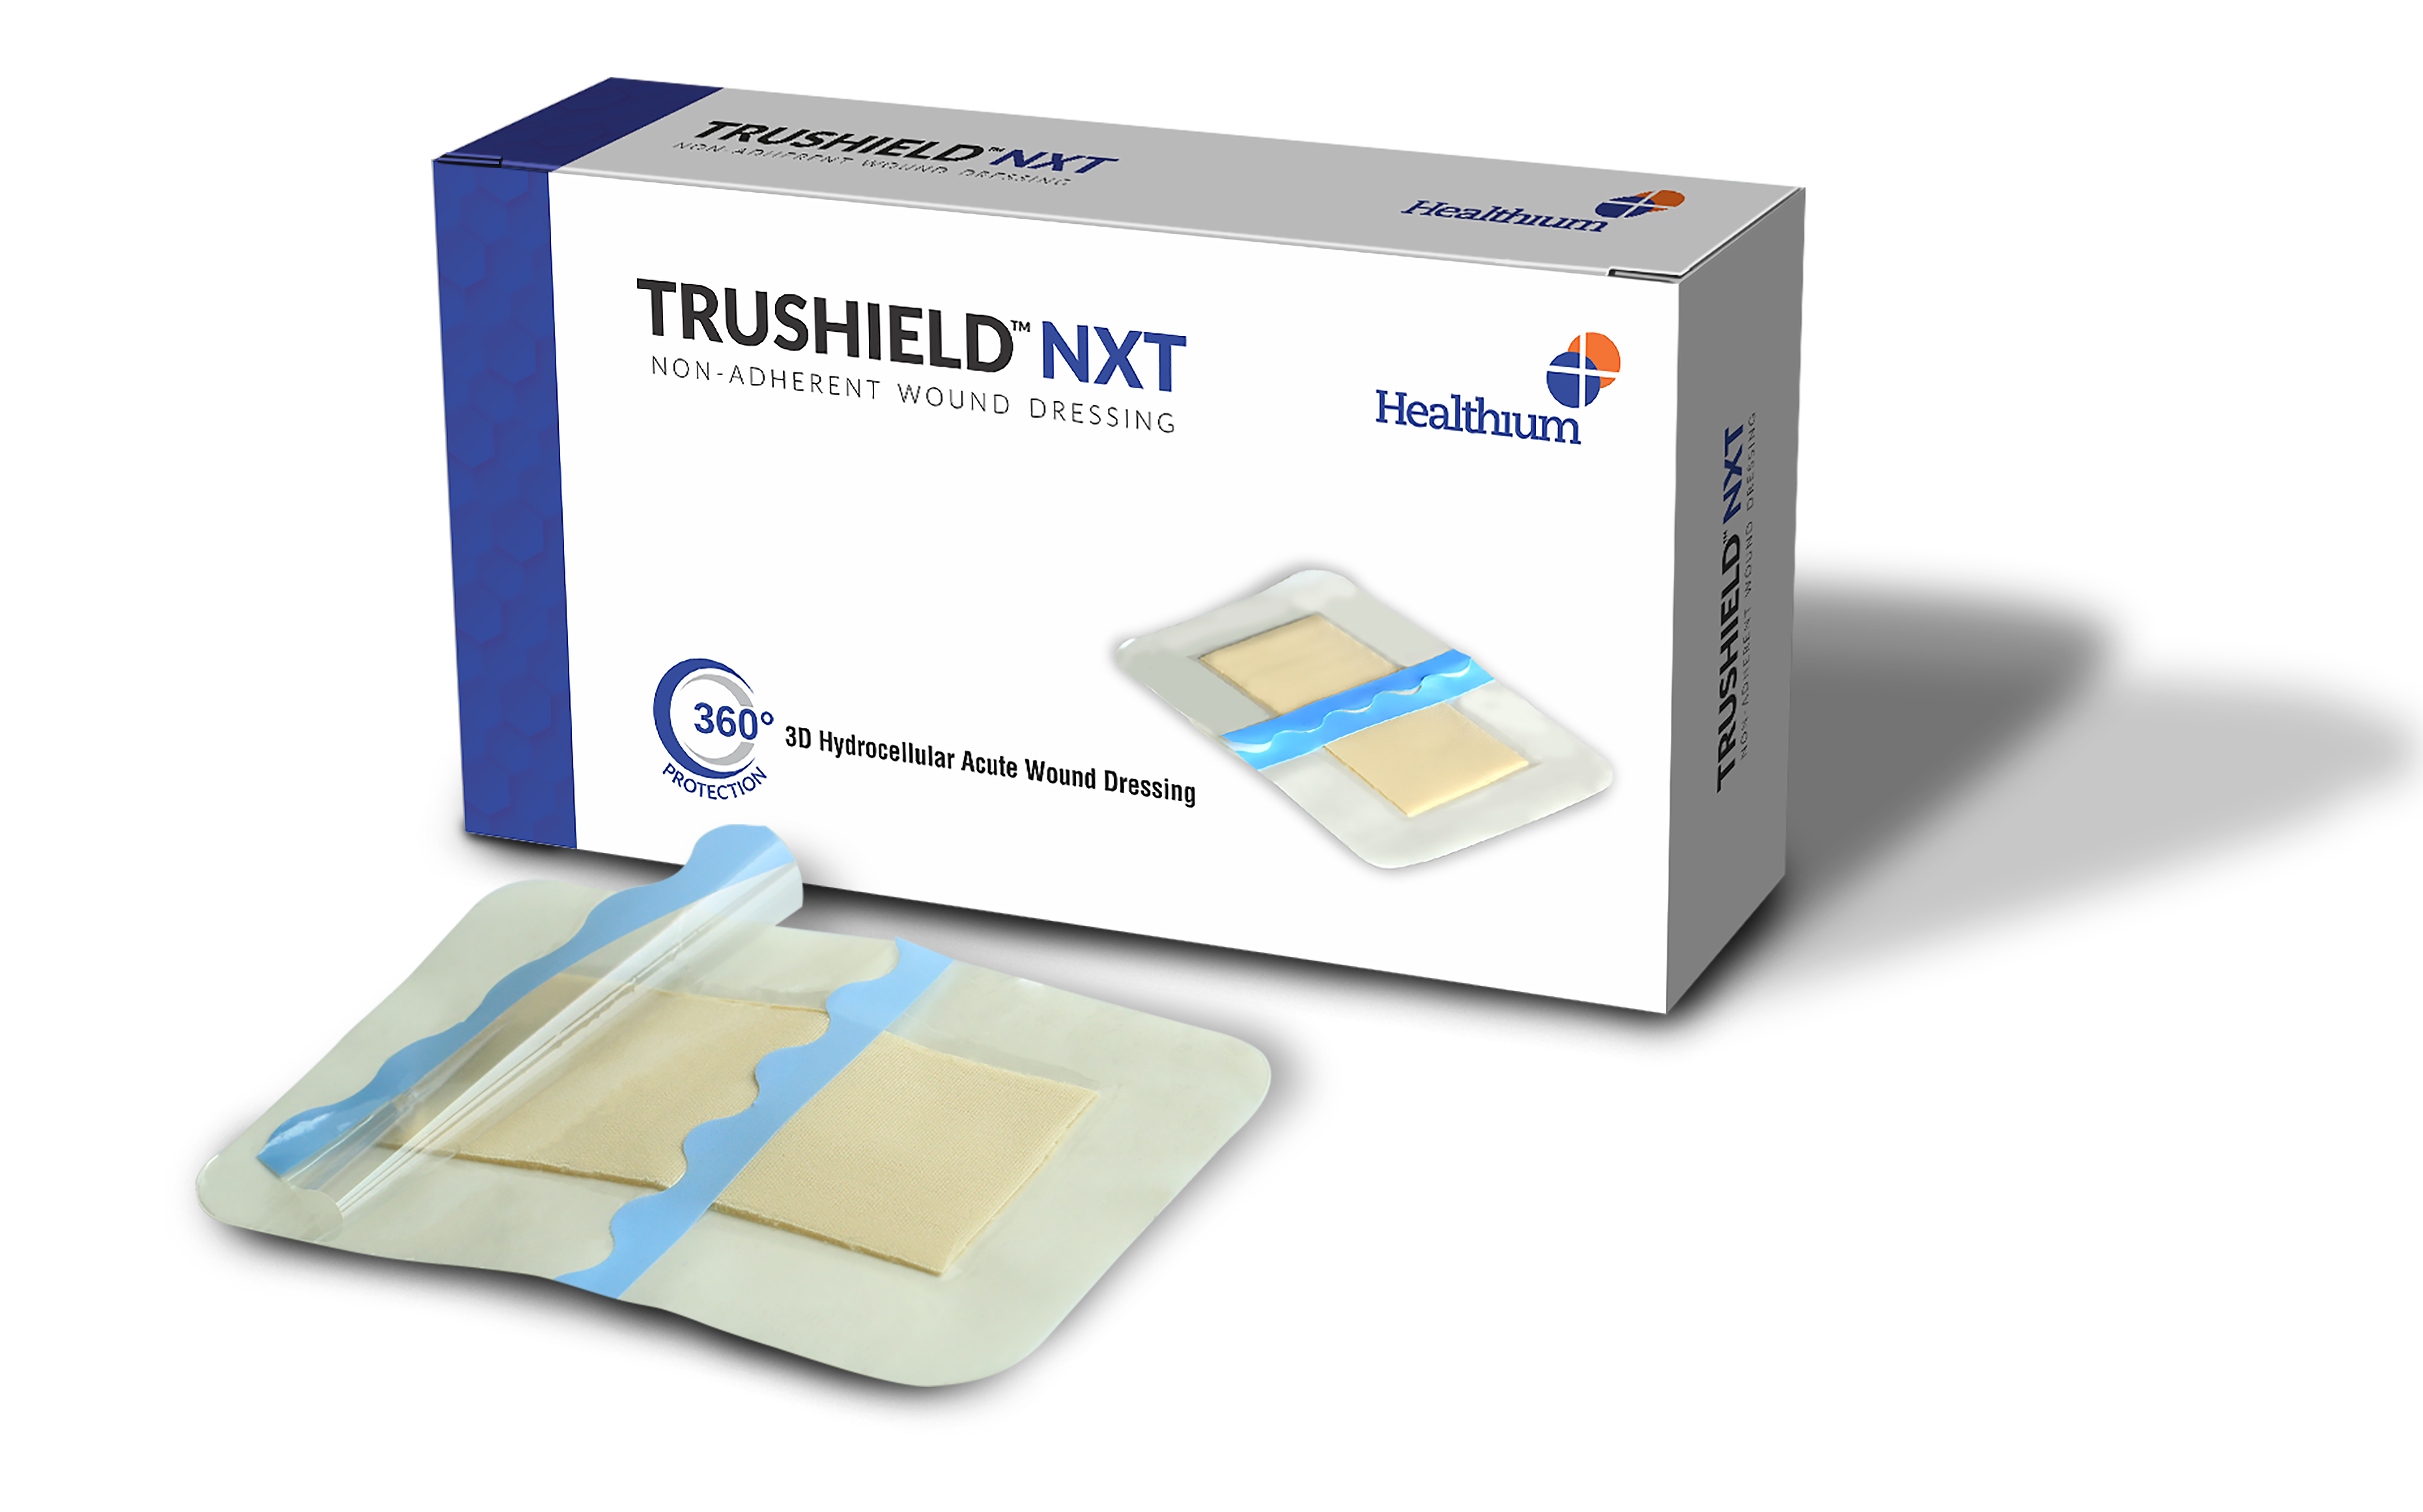 Healthium Medtech introducessurgical wound dressing with patented infection preventiontechnology